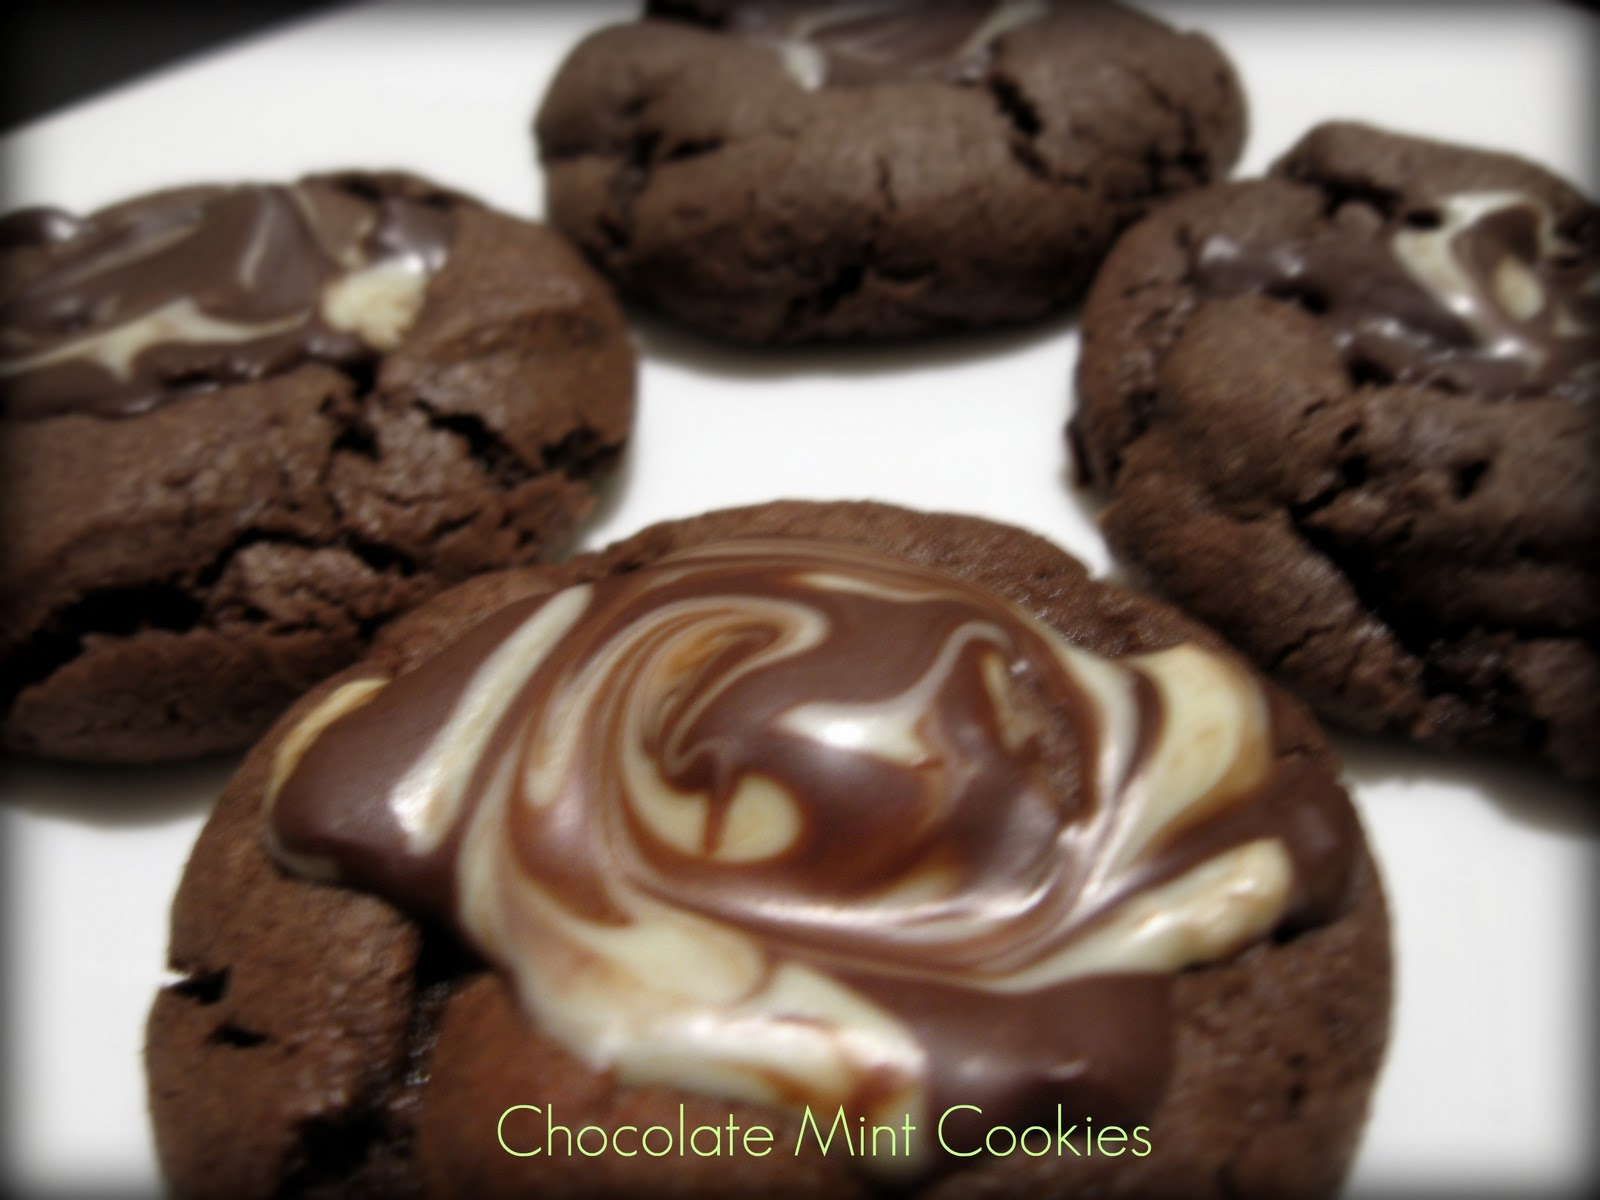 these chocolate mint cookies are my absolute favorite cookie in